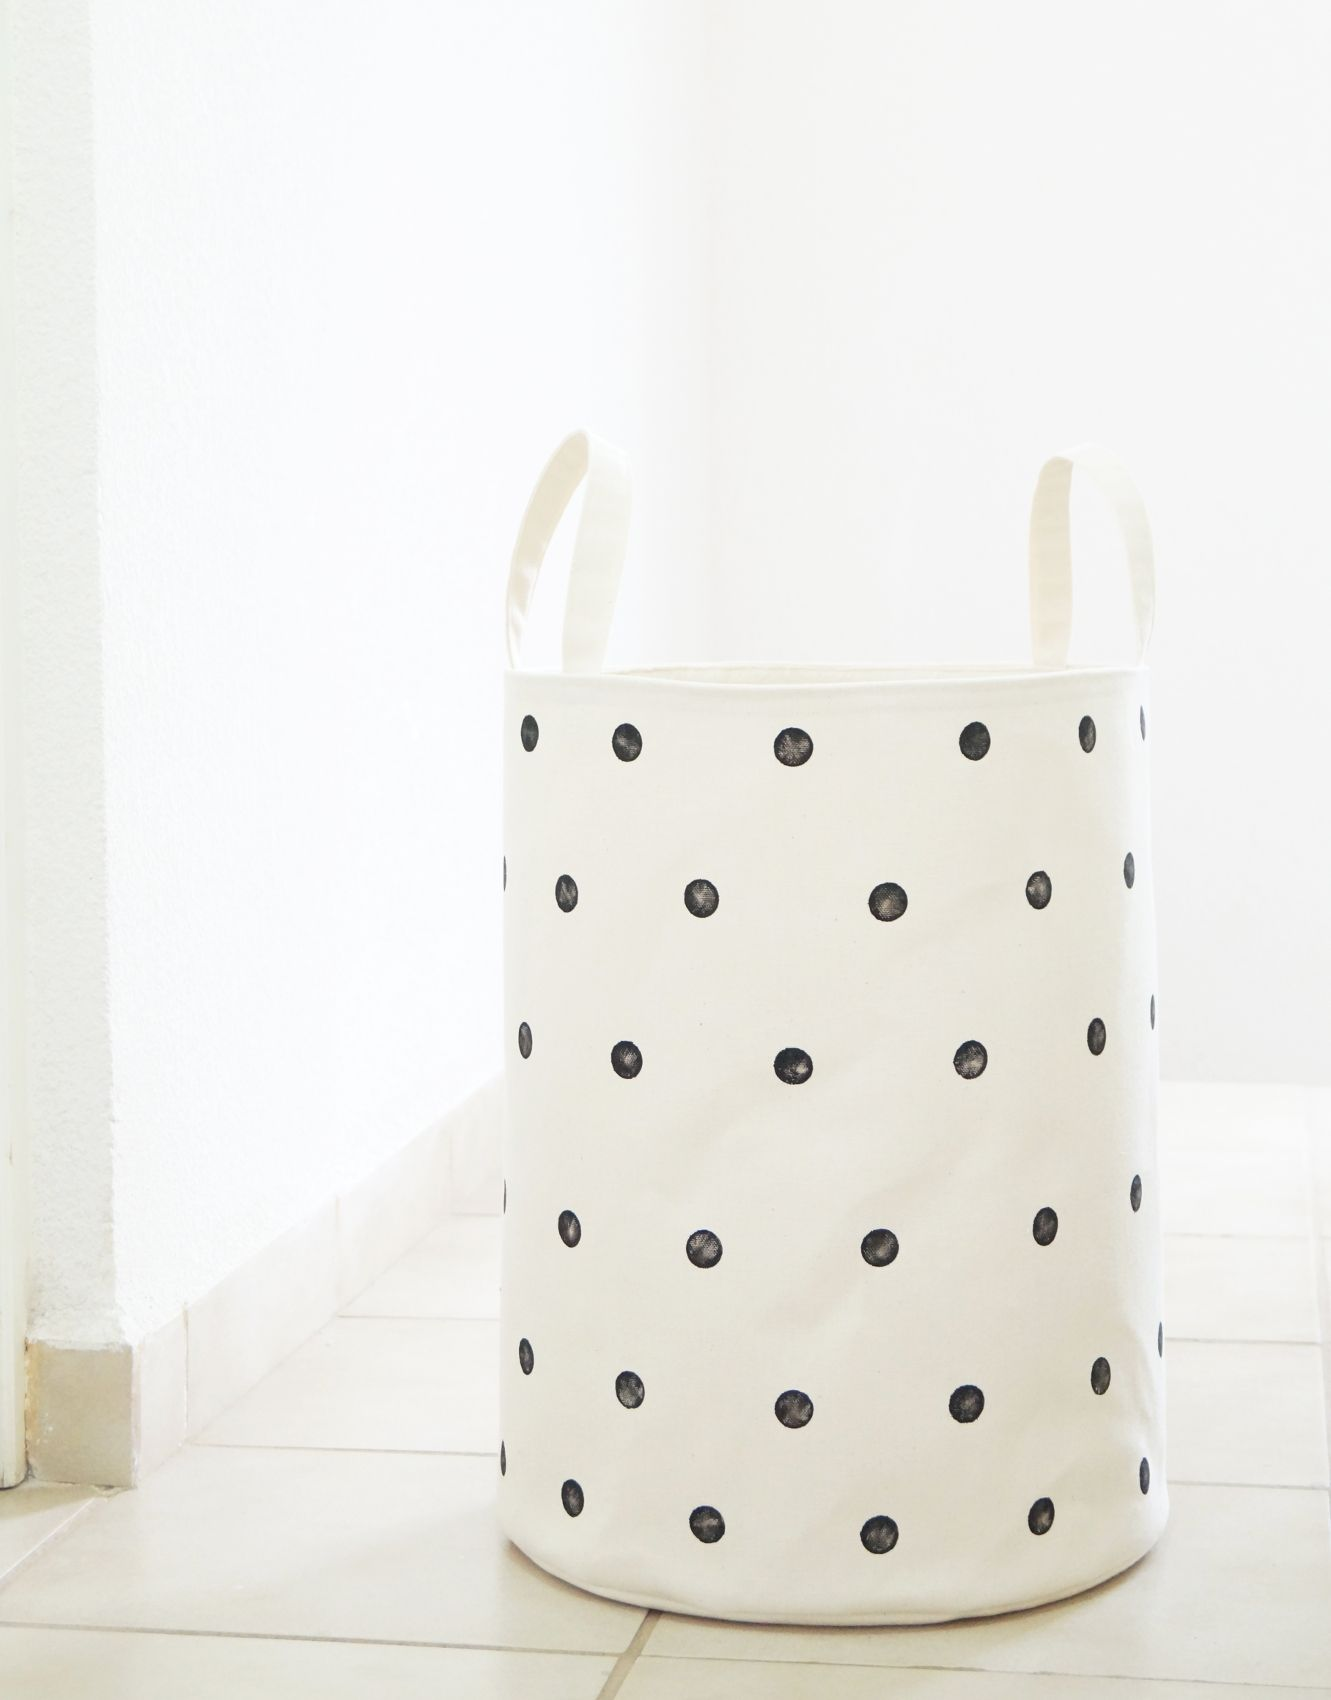 Laundry Hamper White Polka Dots Toy Storage Basket Room Decor Kids Baby Nursery Scandinavian Home Interior Design Styling